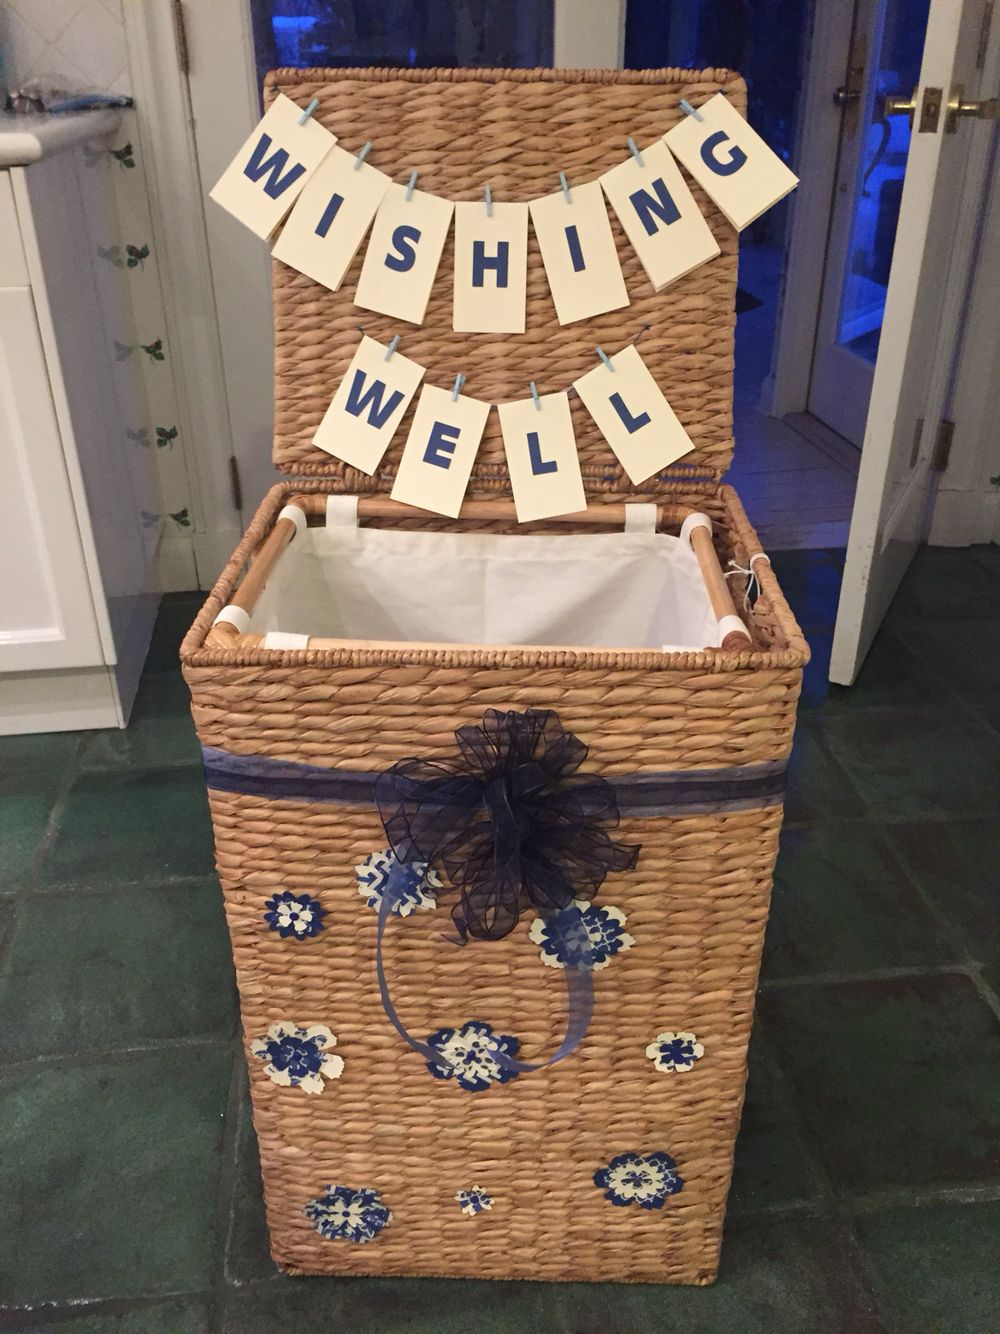 beautiful wishing well and wishing well hamper is also a image of bridal shower wishing well gifts ideas